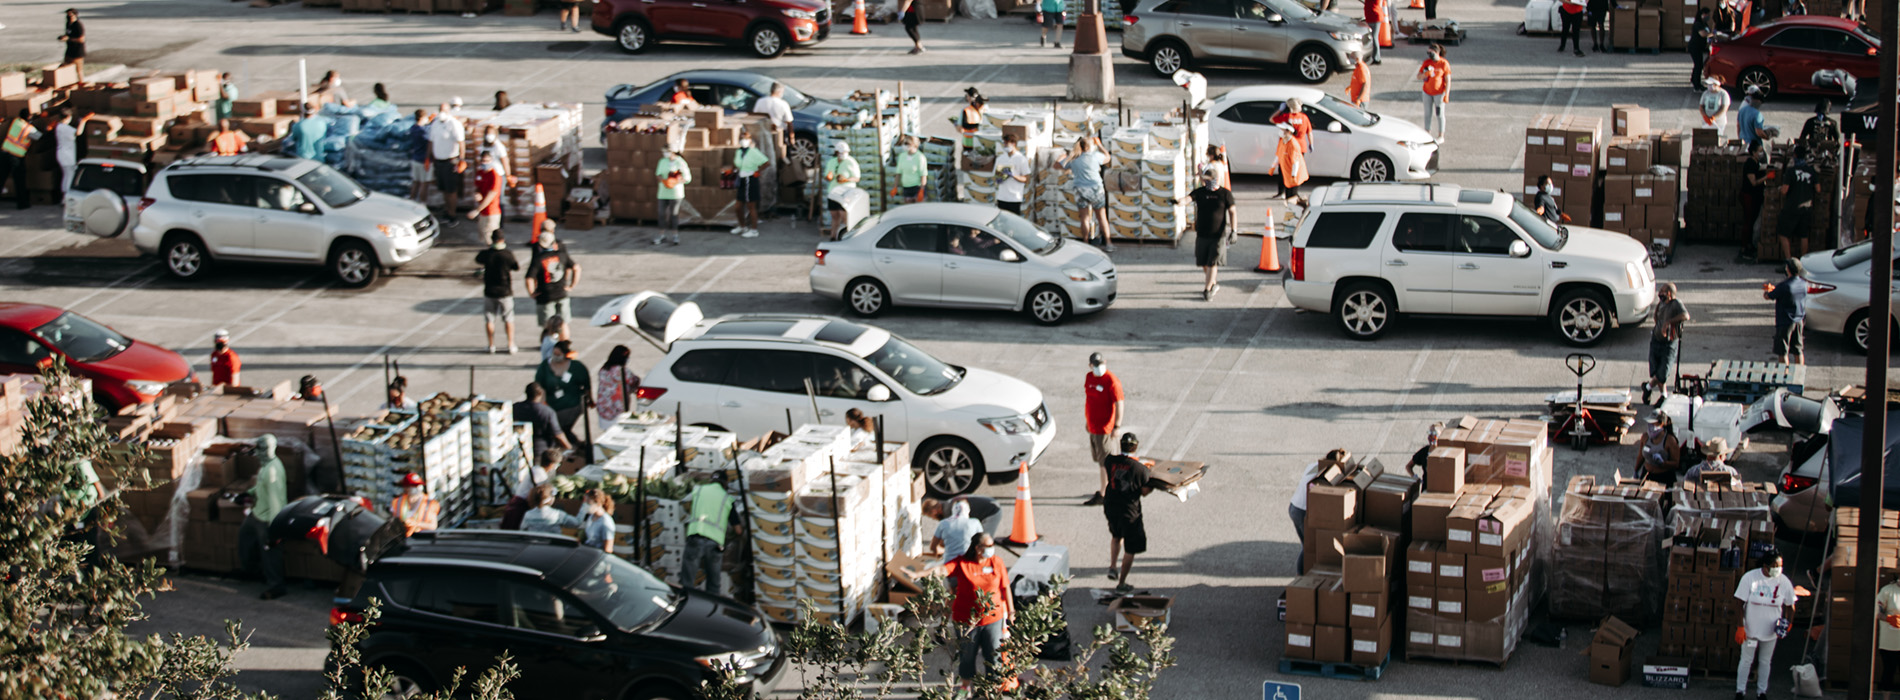 Volunteers load hundreds of cars at a point of distribution with much needed food and supplies from Convoy of Hope.